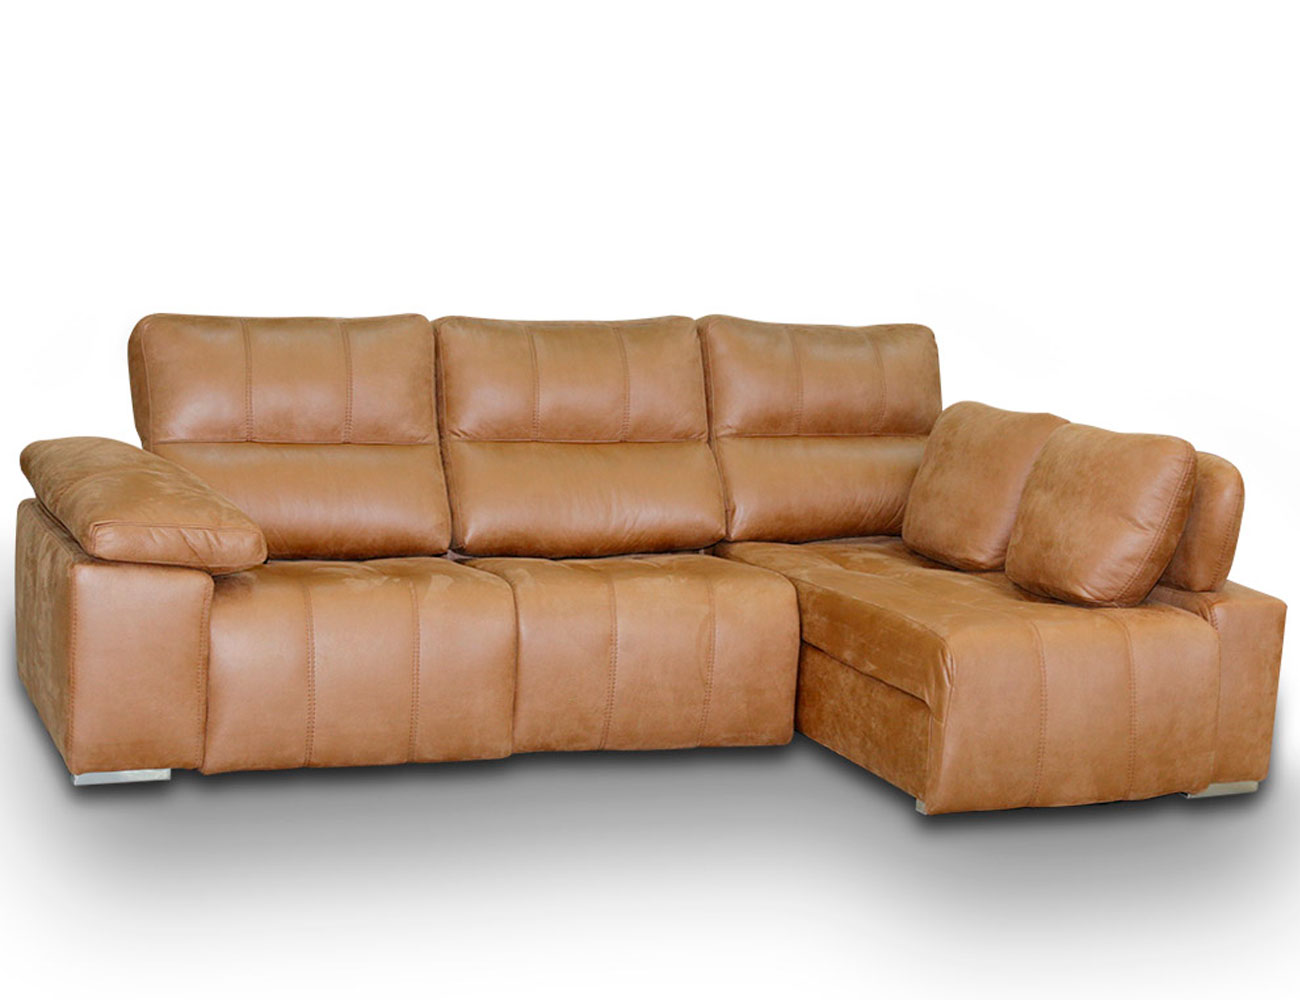 Sofa chaiselongue relax 2 motores anti manchas15